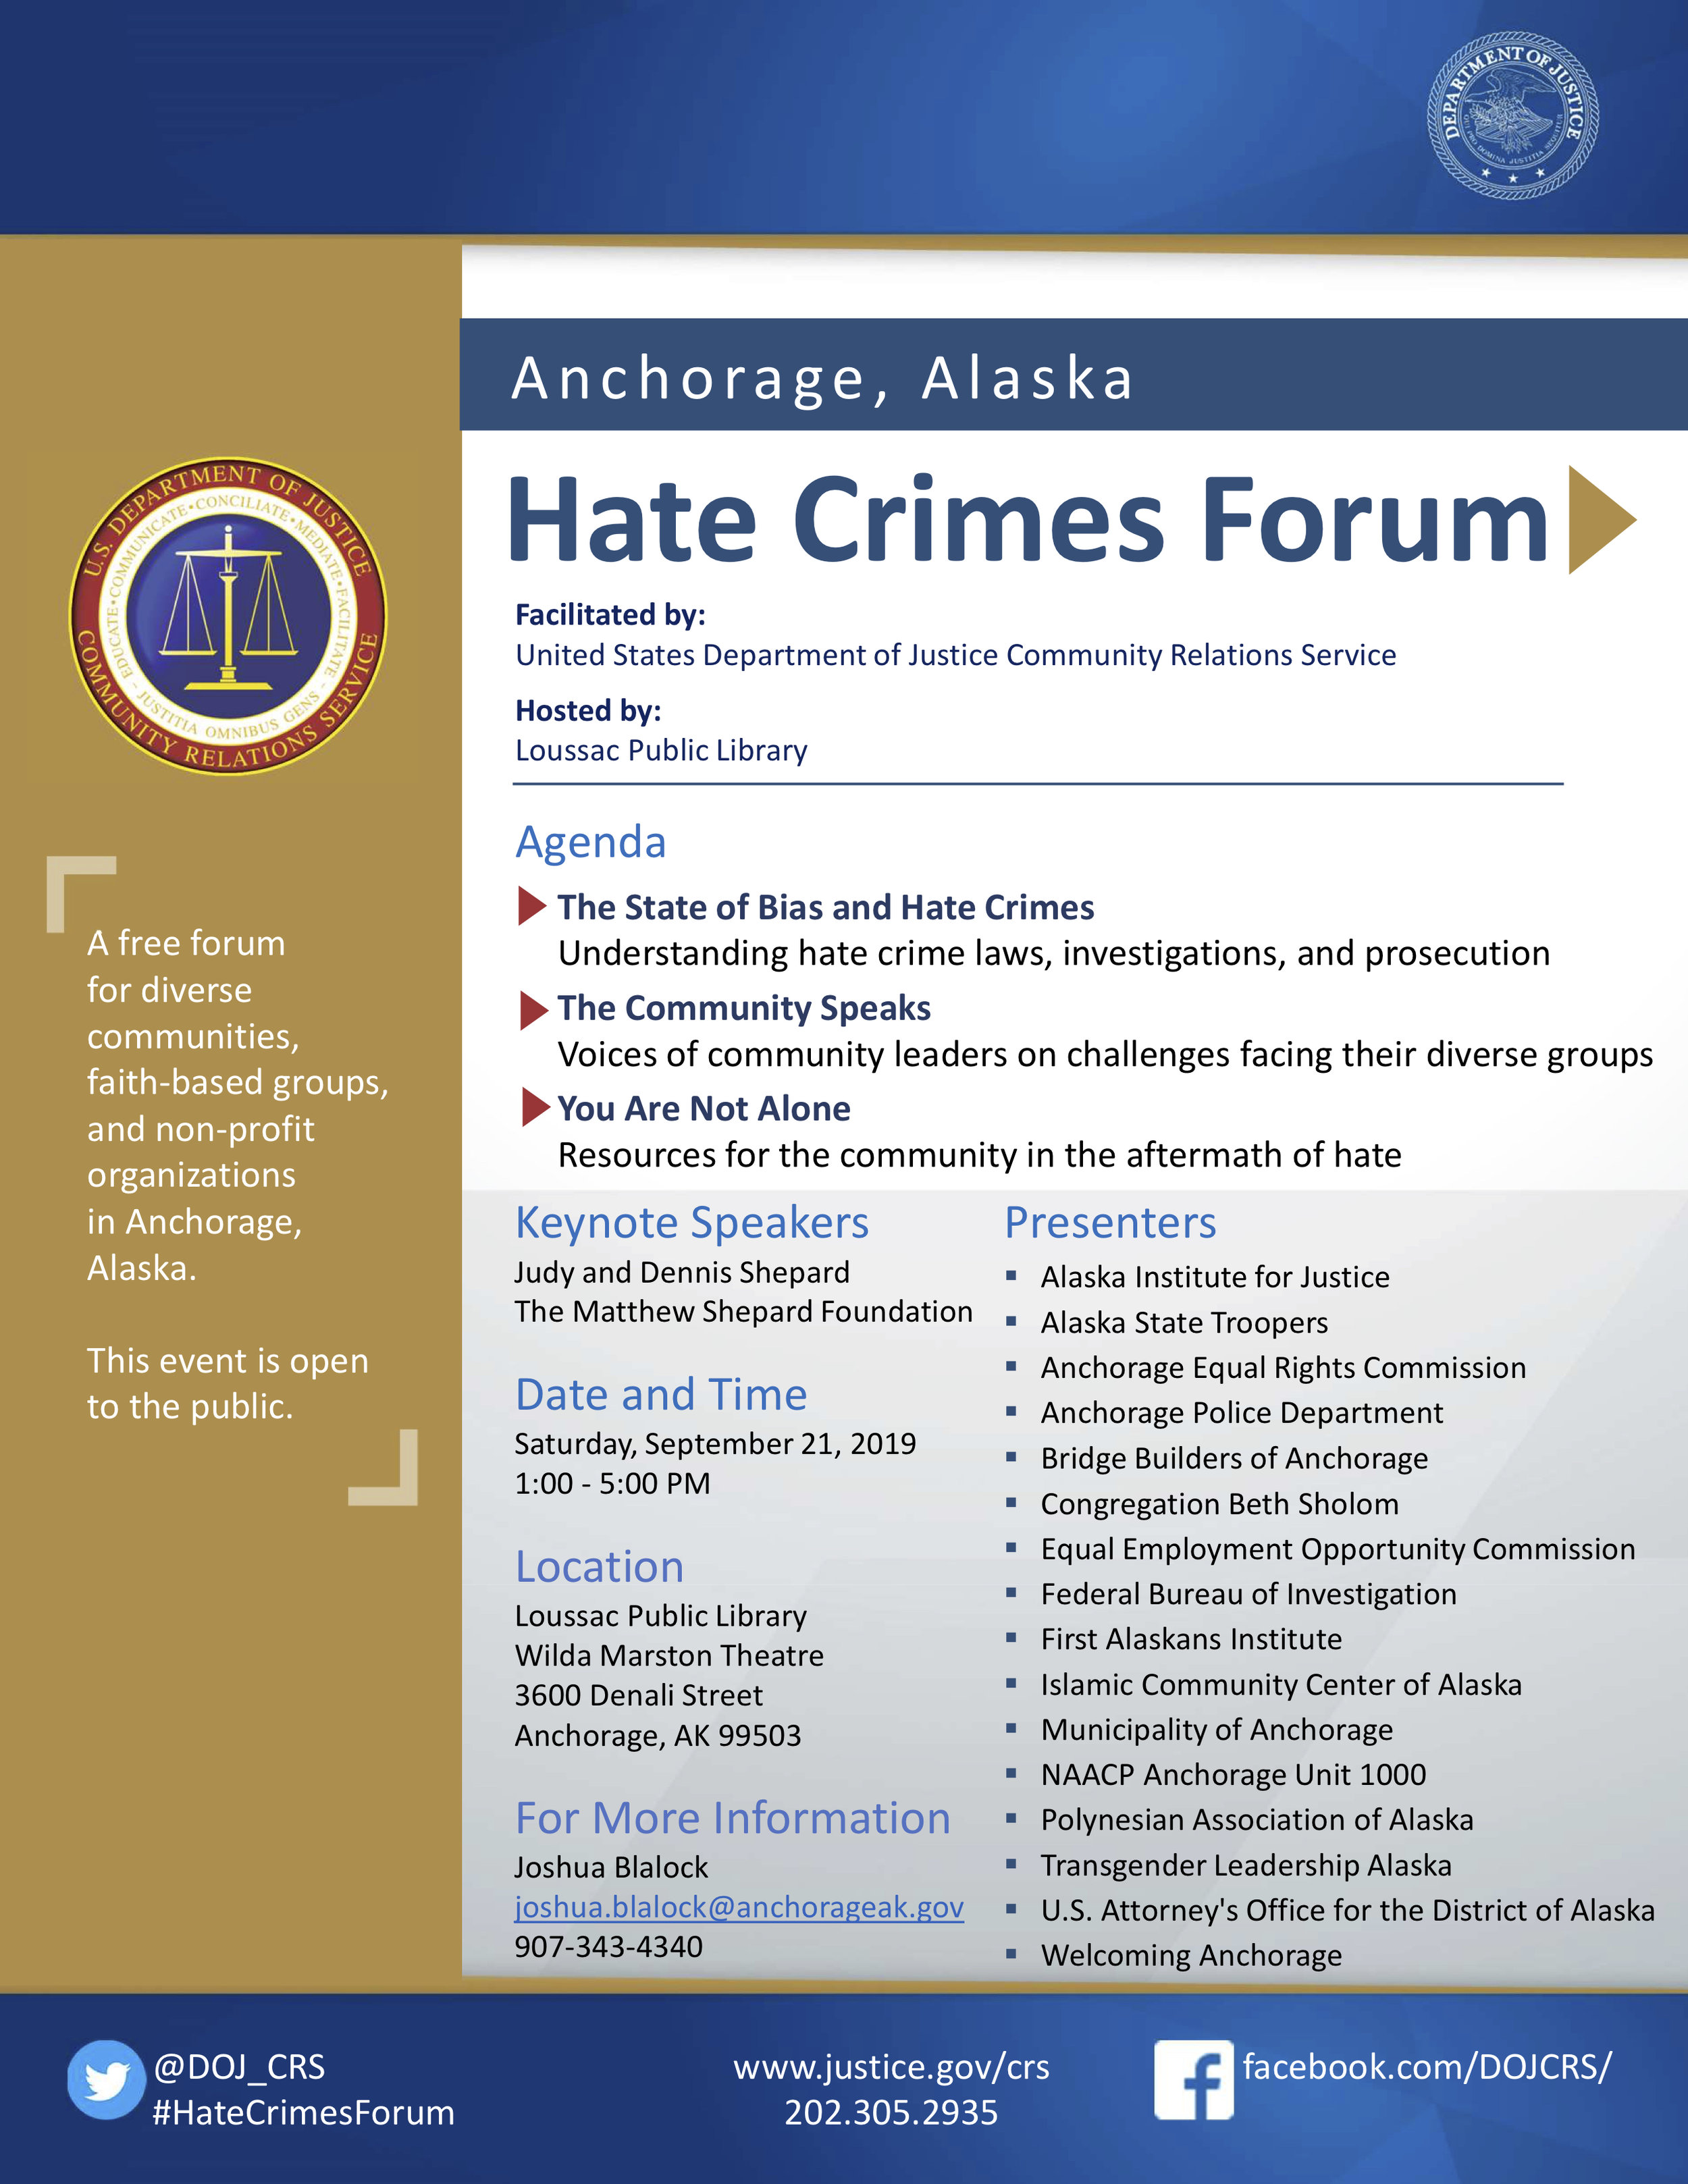 Hate Crimes Forum AK 9.21.19 Flyer FINAL.jpg